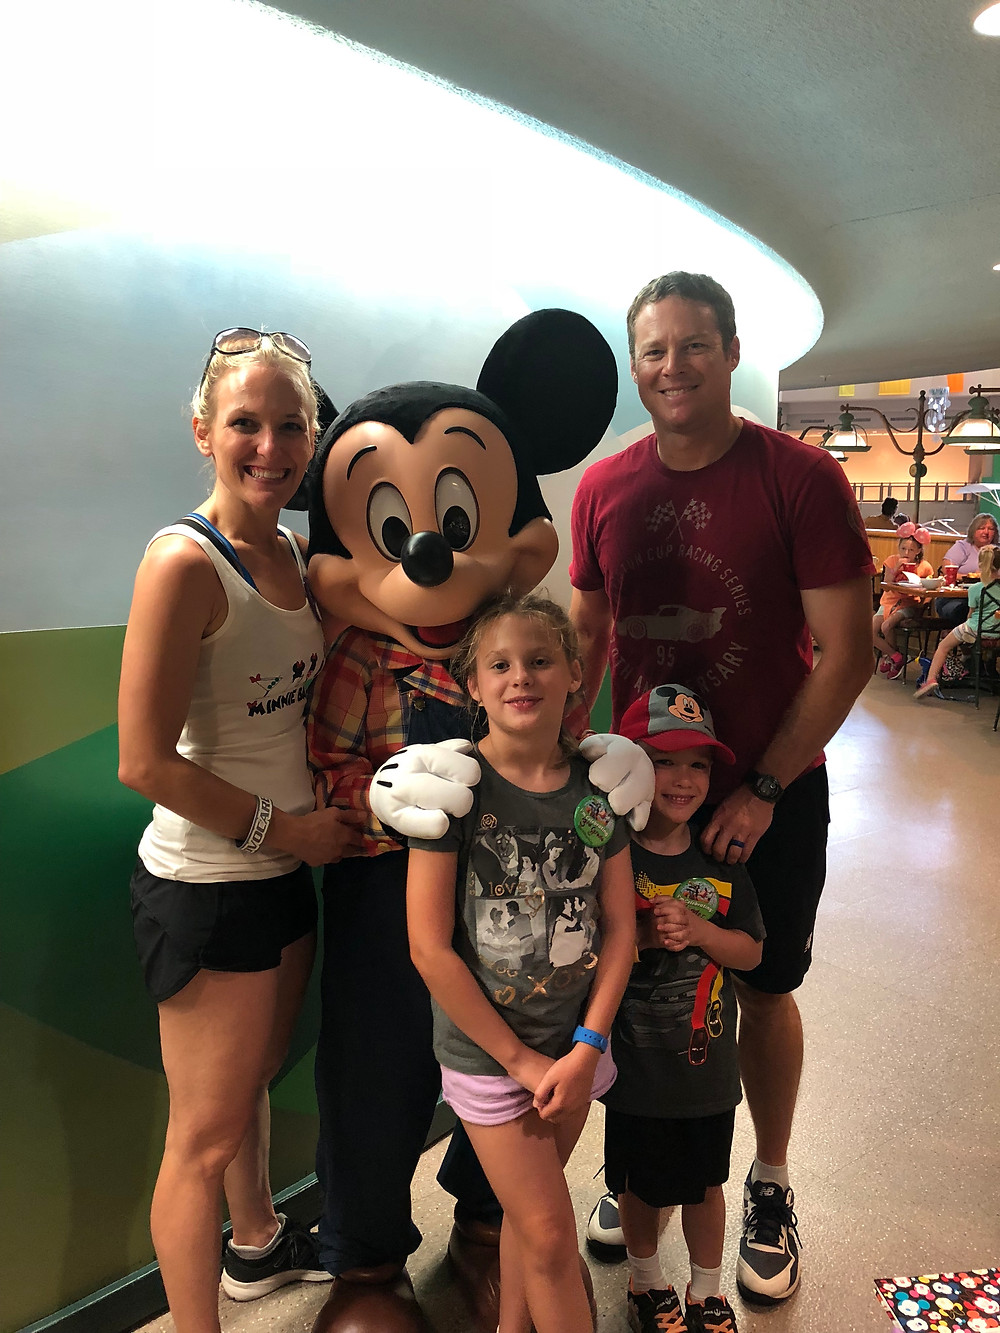 family together with Mickey Mouse at Disney World